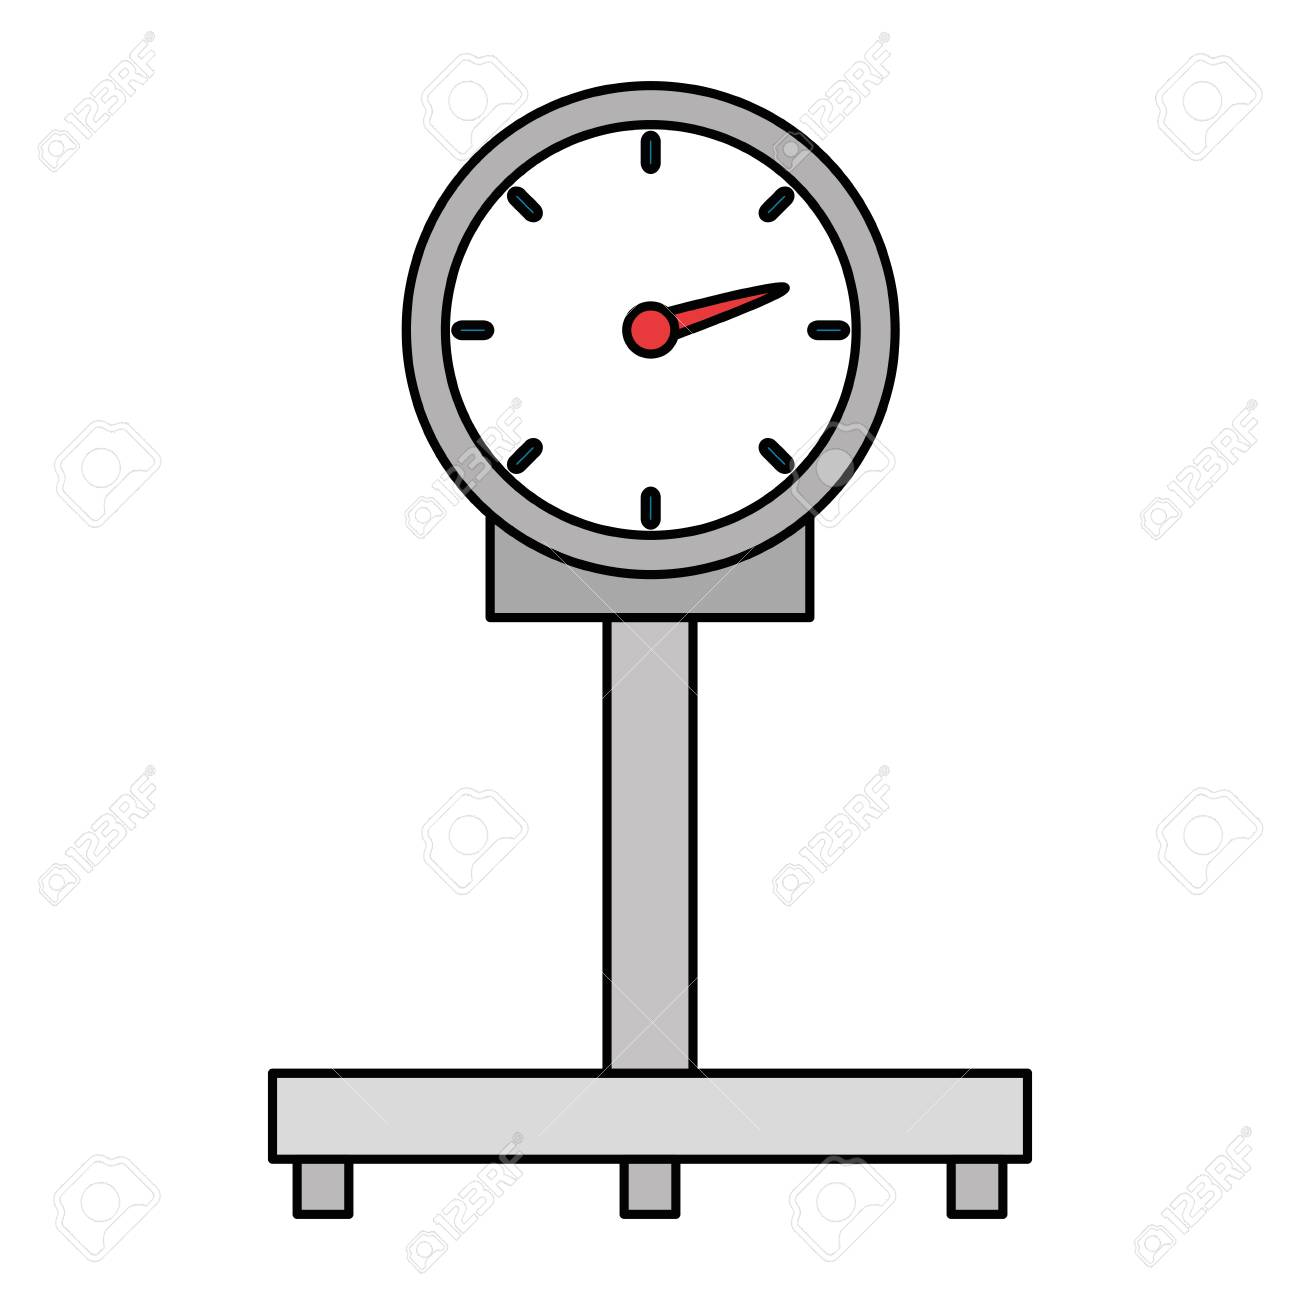 scale measure weight delivery service vector illustration design - 110303388